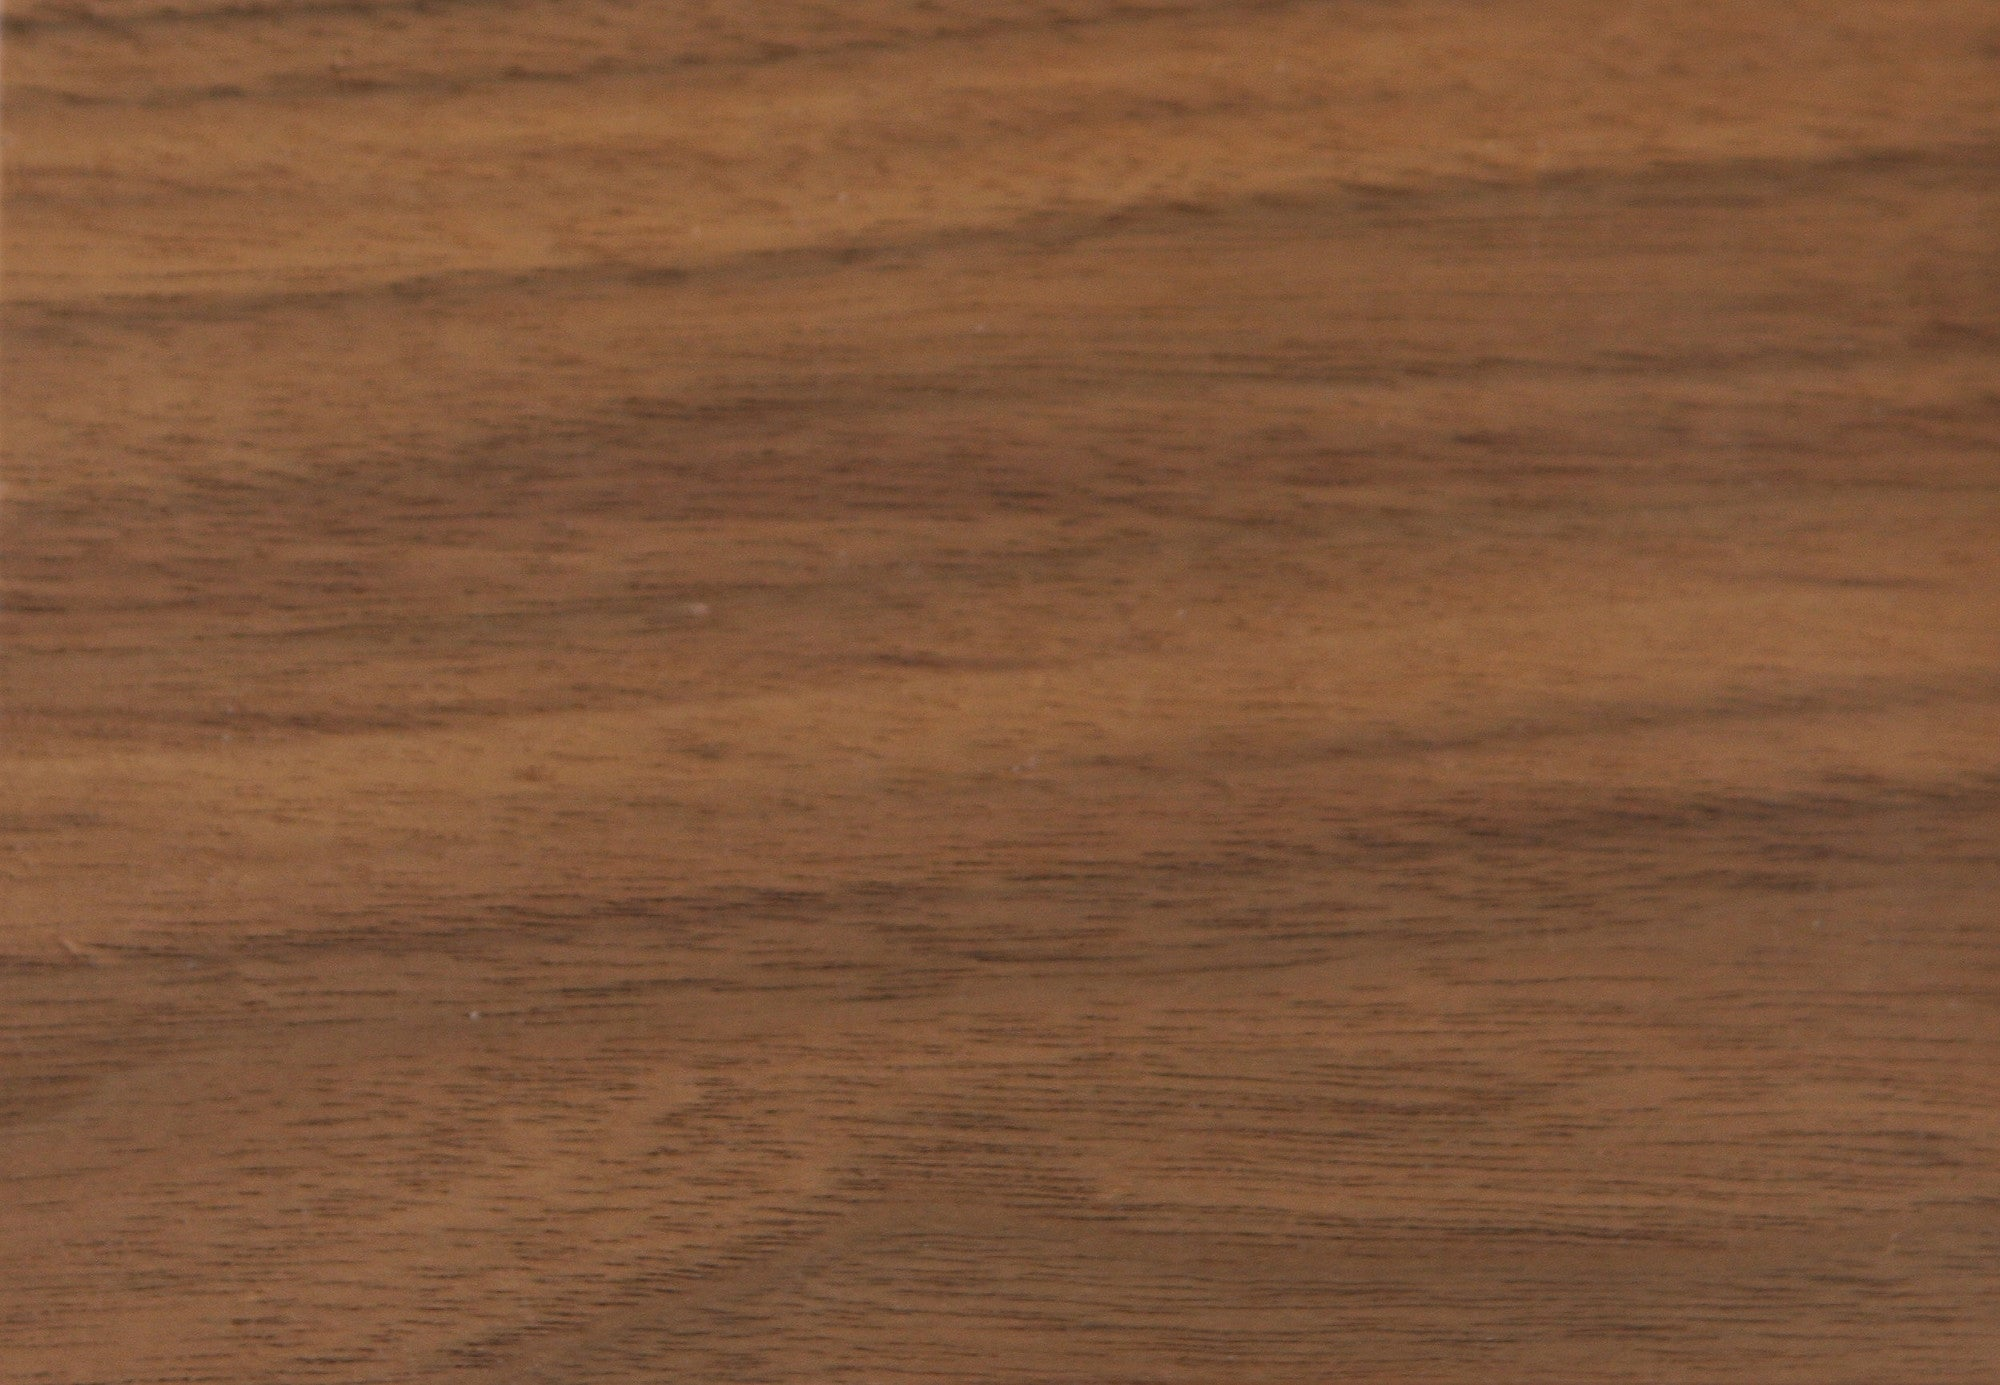 Natural Finish On Walnut Mortise Amp Tenon